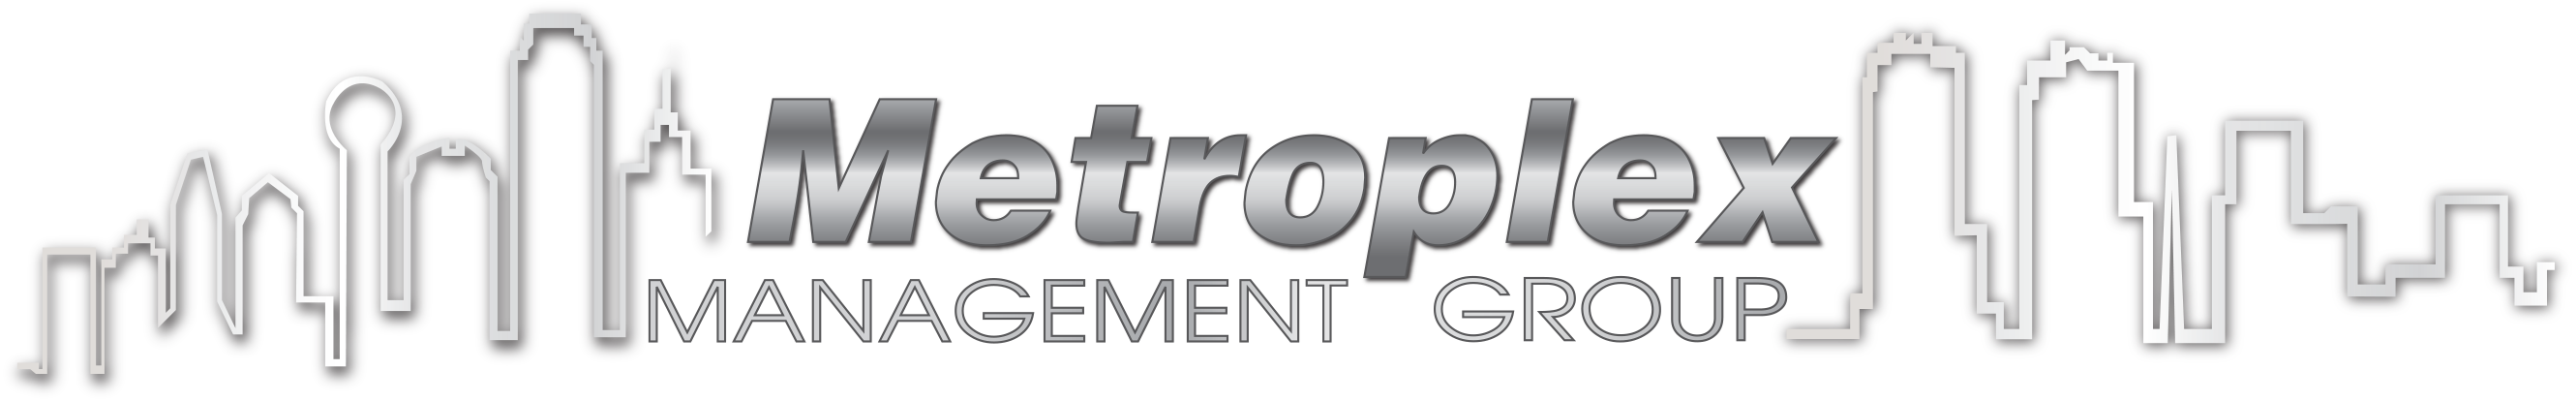 Metroplex Management Group